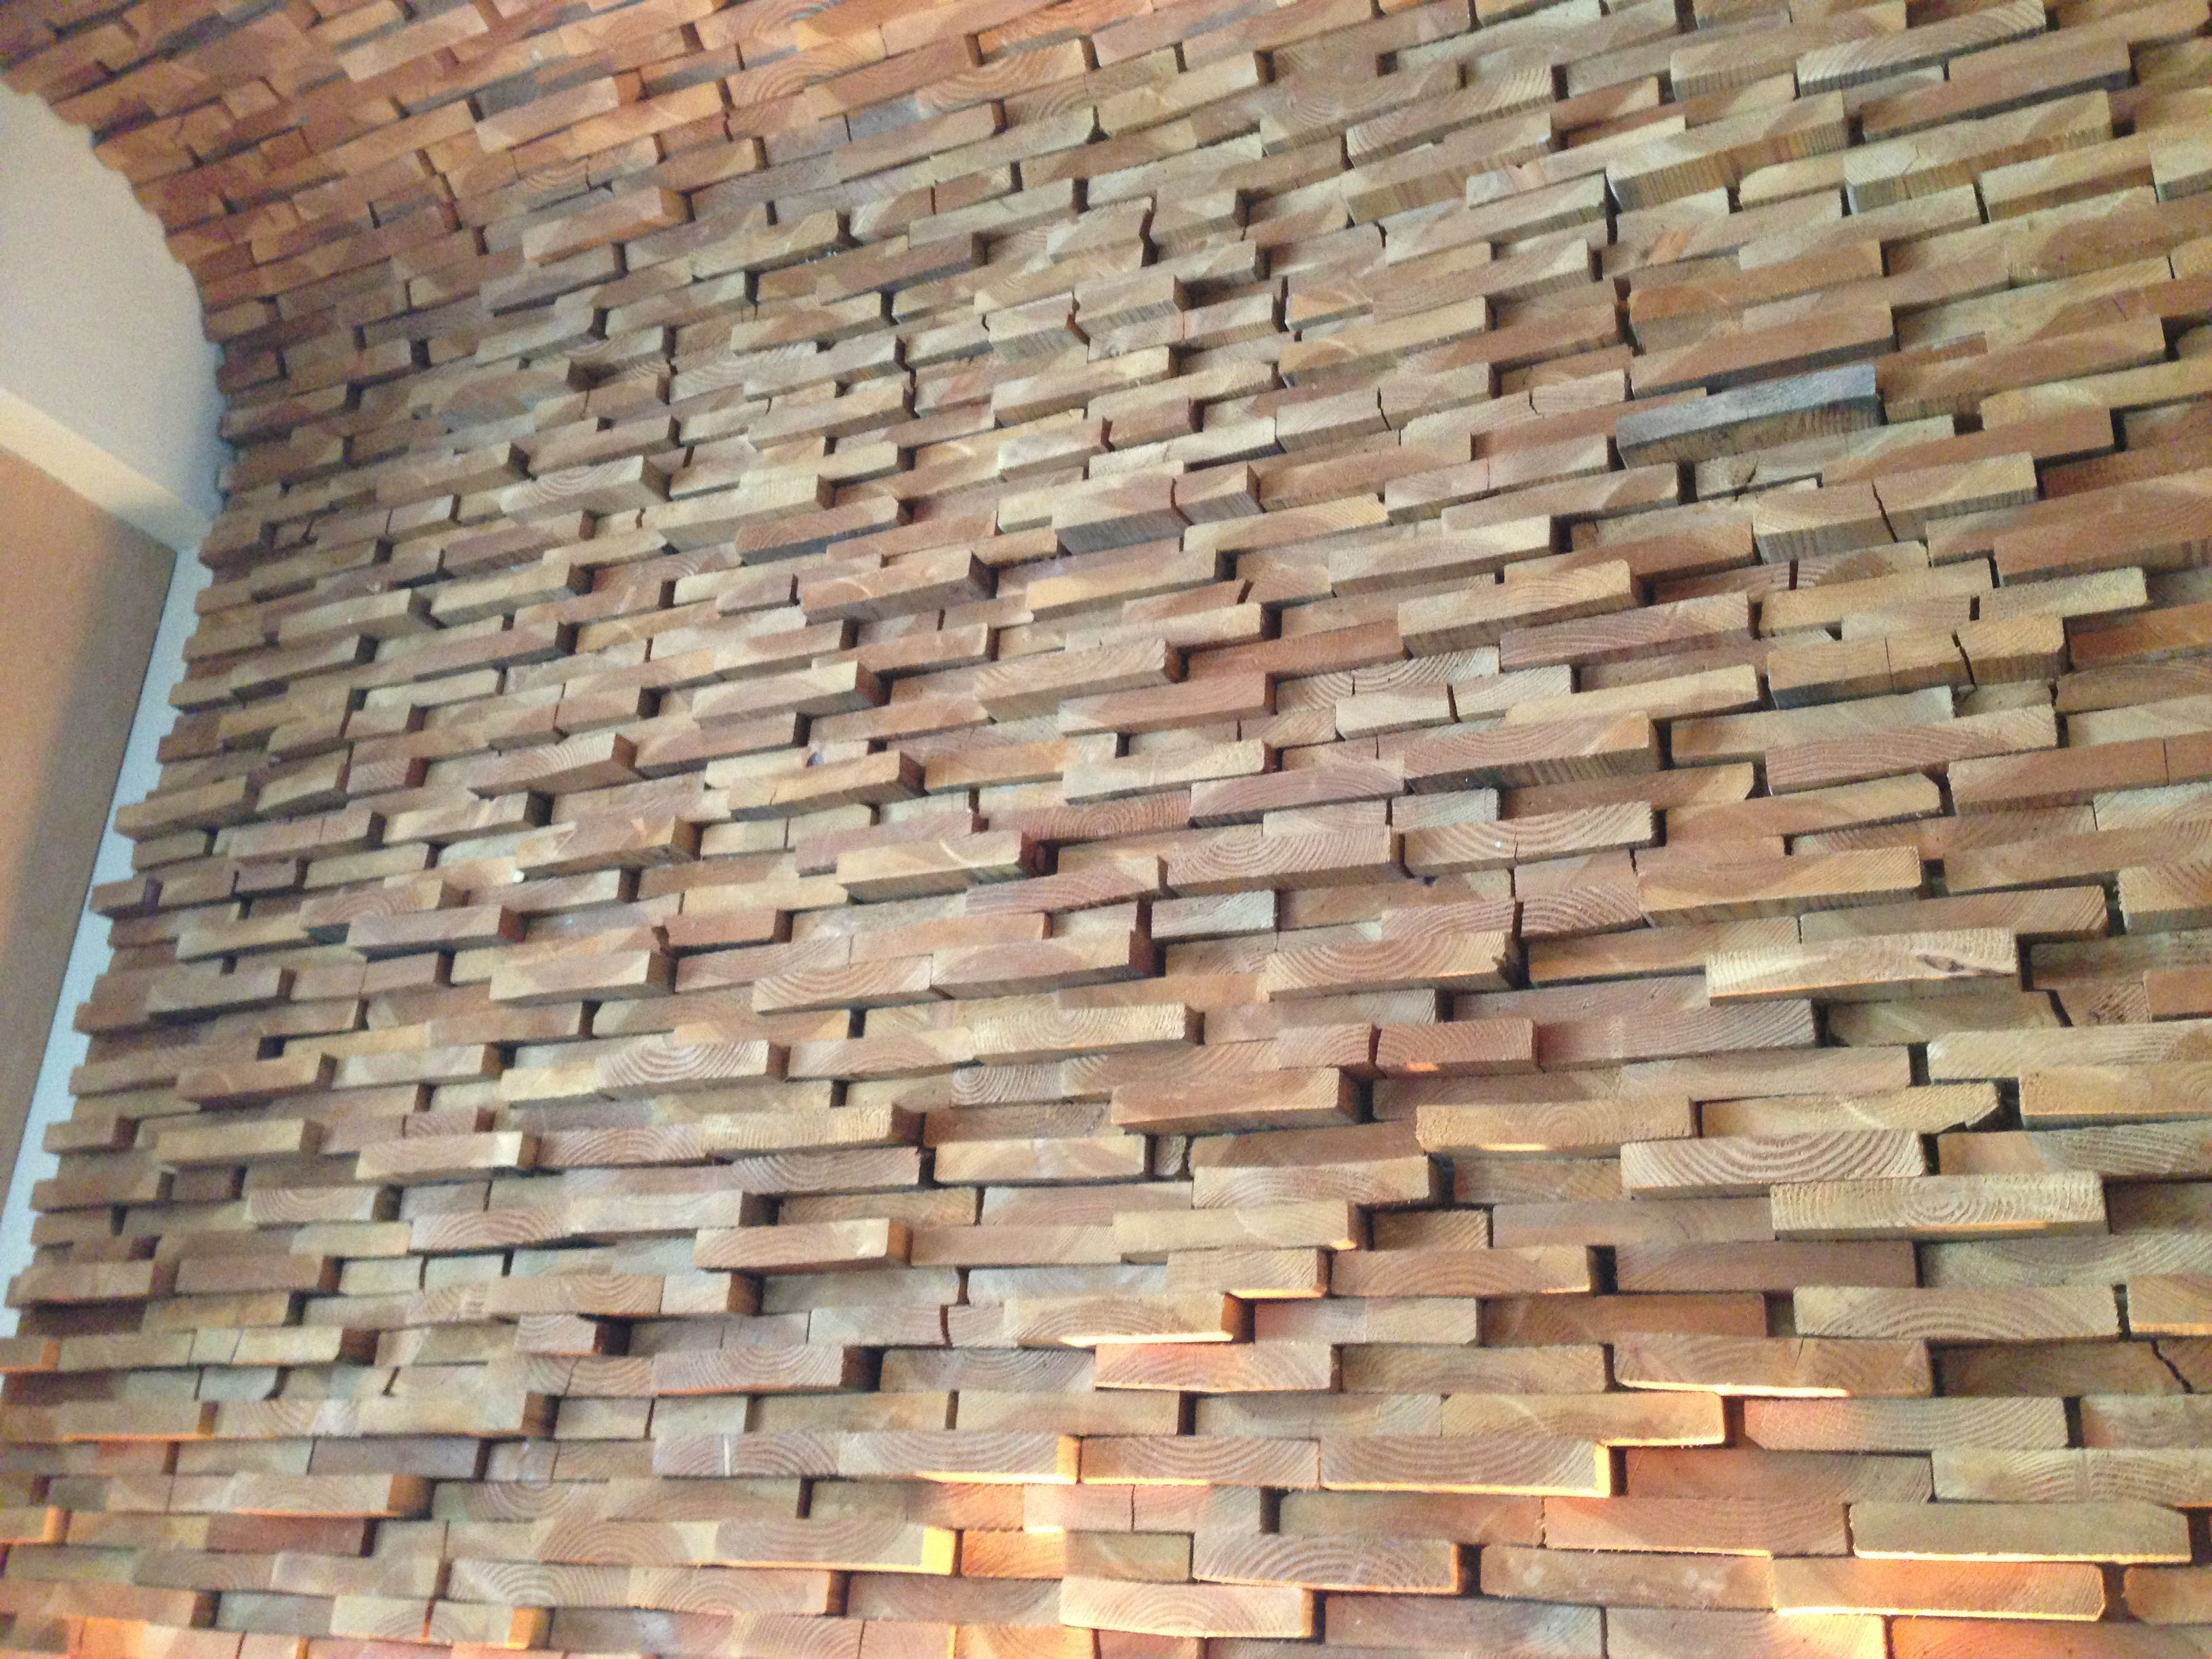 Rough Wood Walls Made From The Ends Of 2x4 2x6 Etc